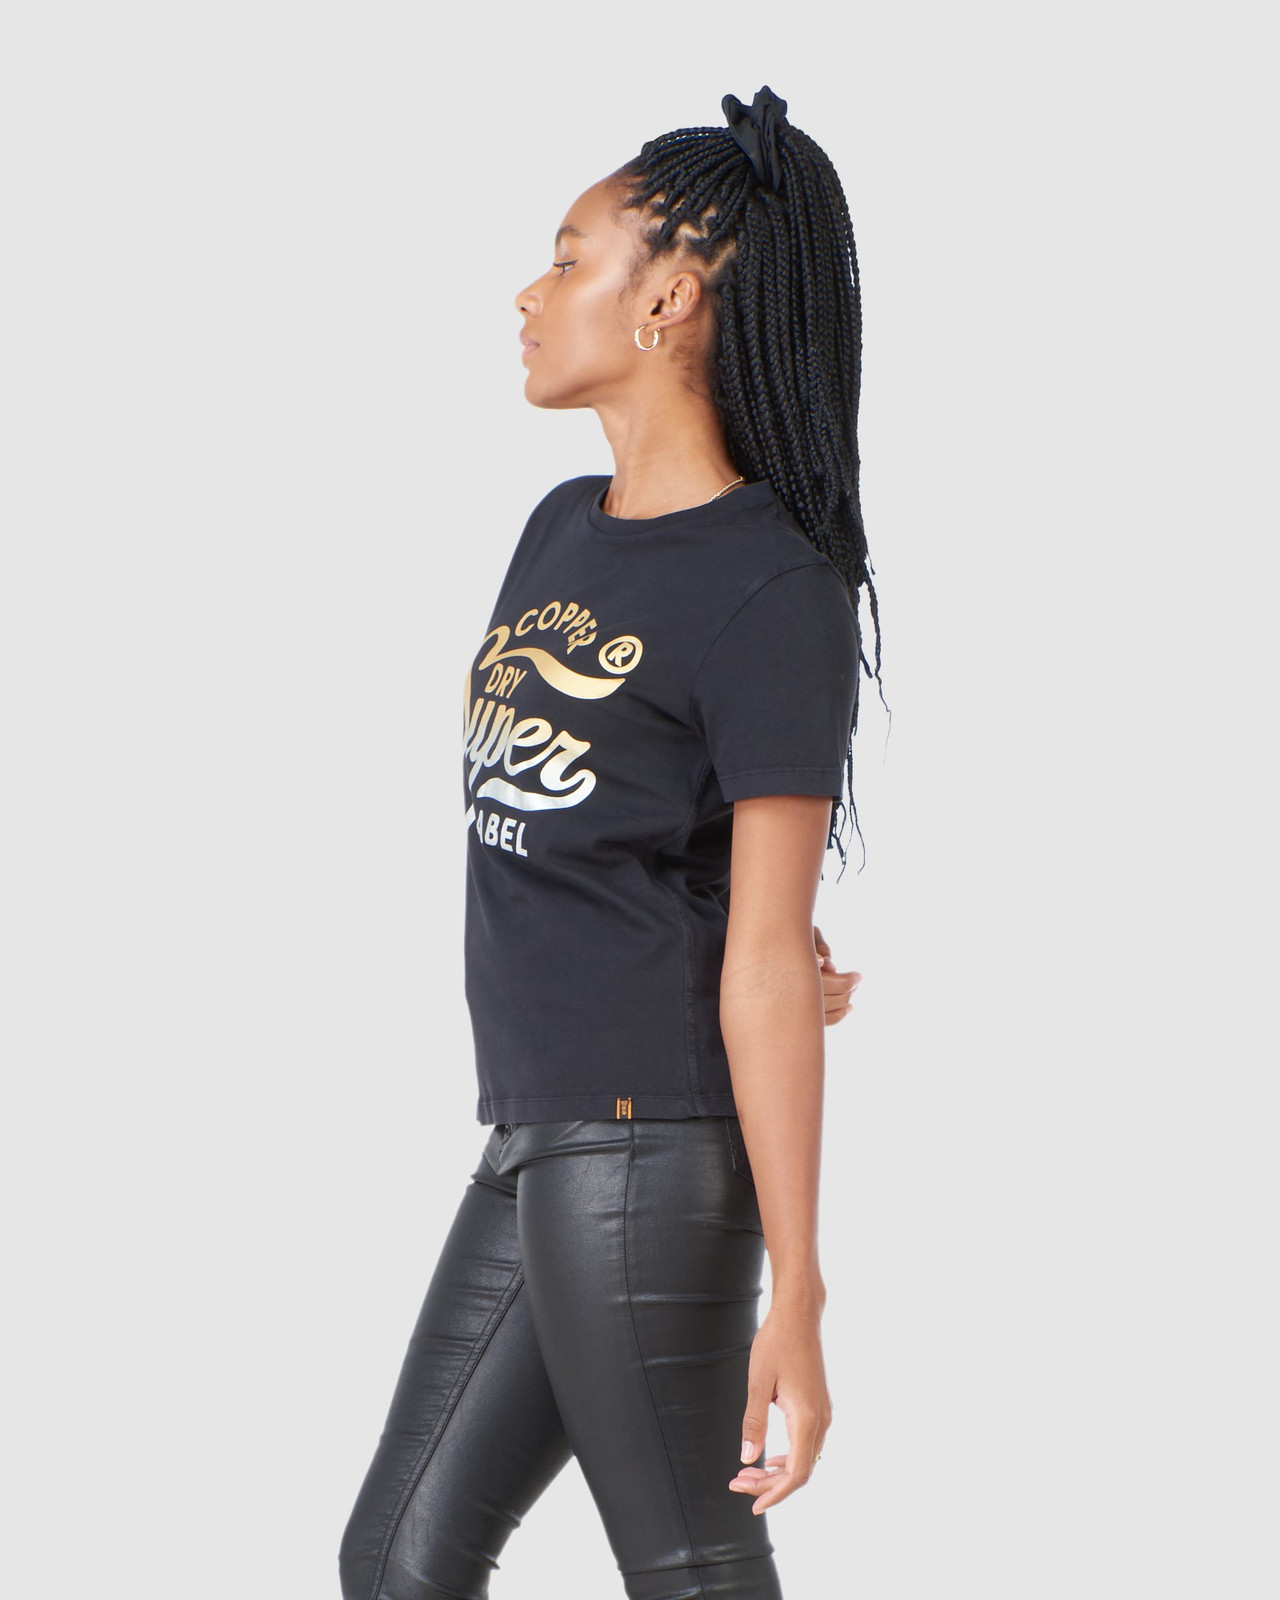 Superdry Womens COPPER LABEL TEE Black Printed T Shirts 2